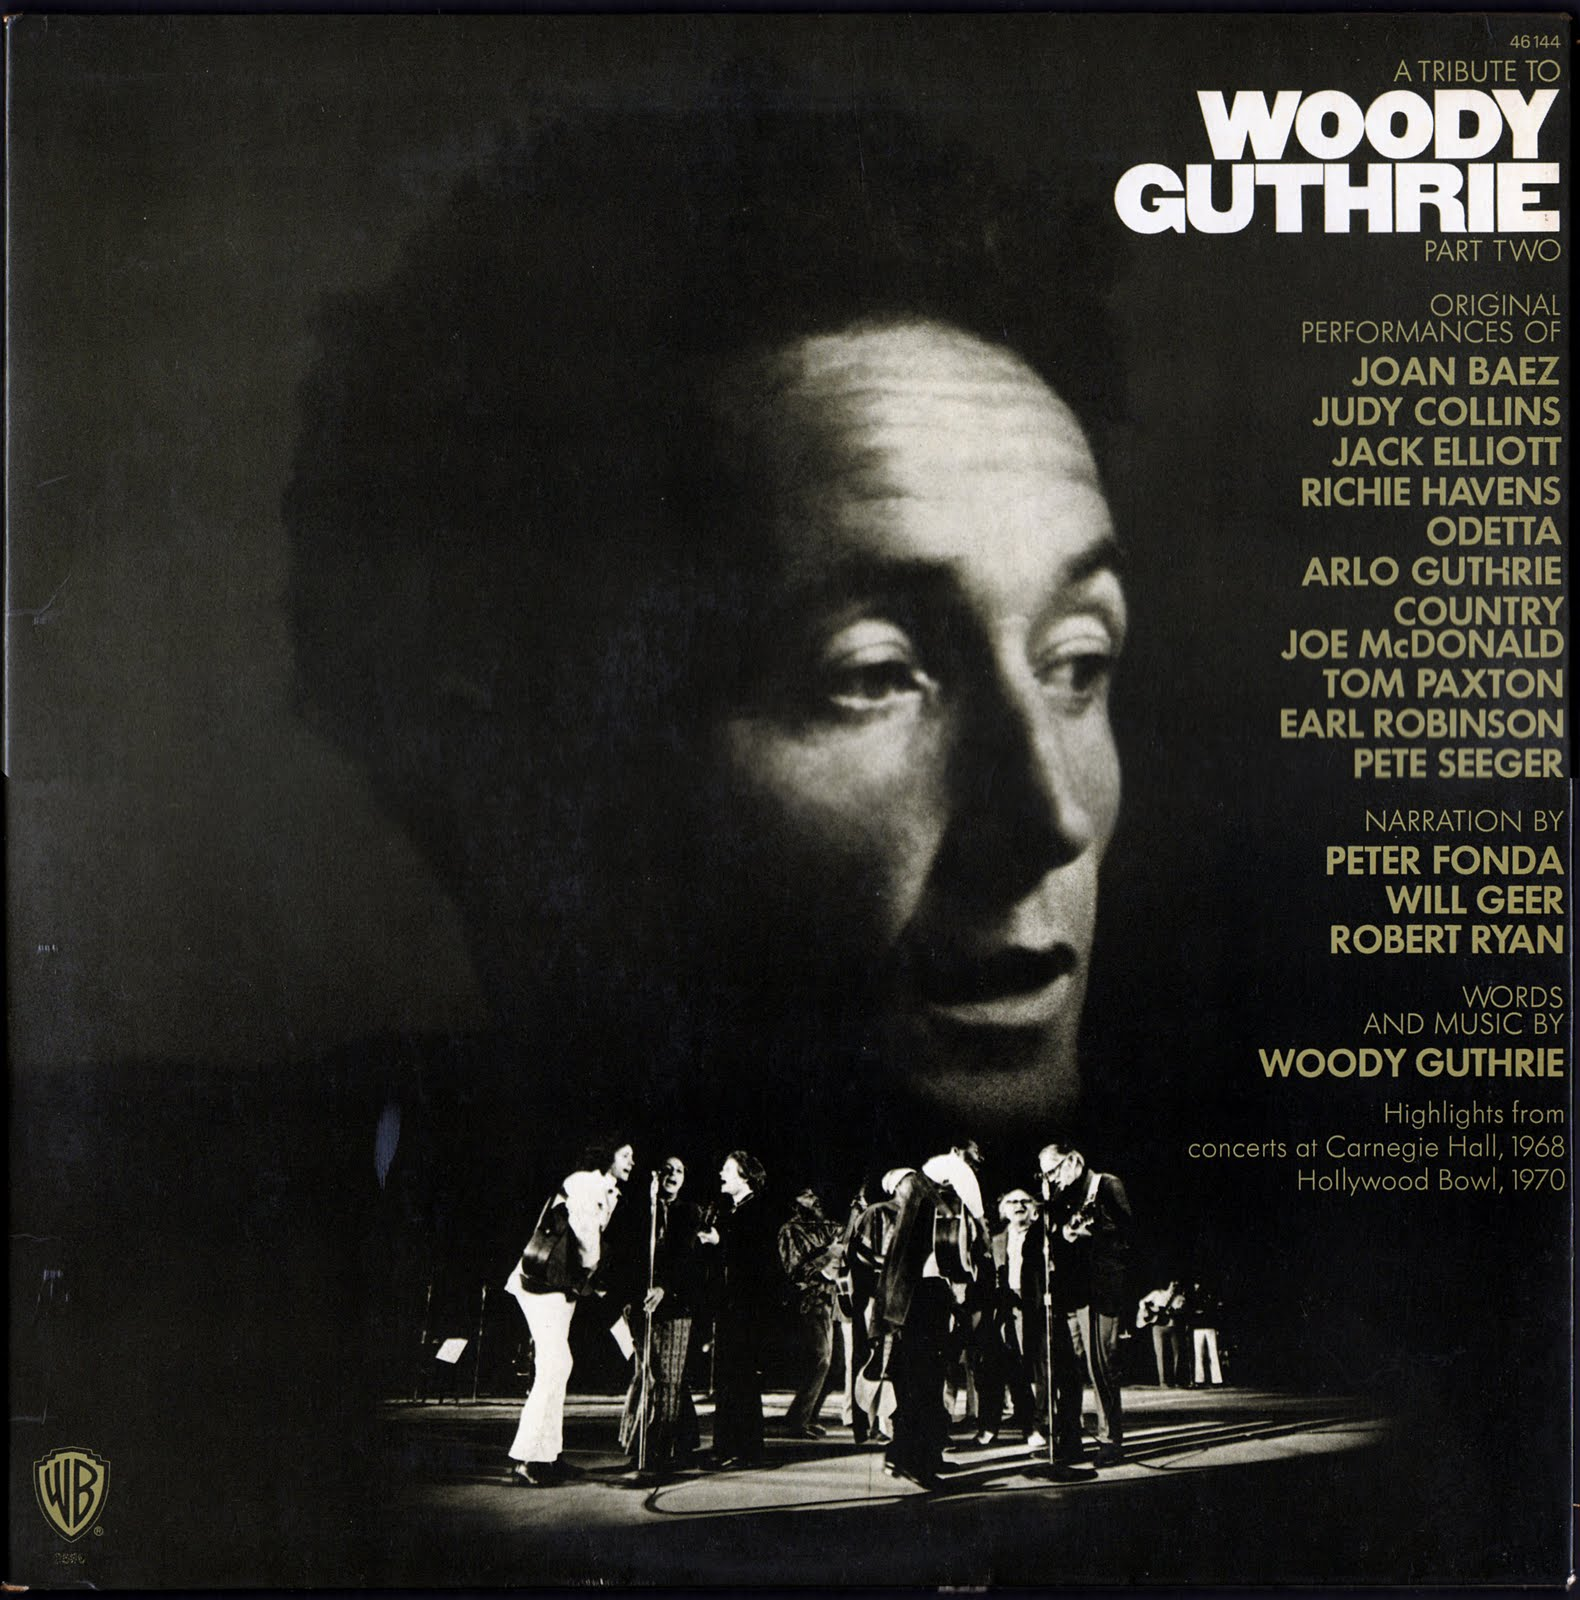 Zero G Sound Va A Tribute To Woody Guthrie Vol 2